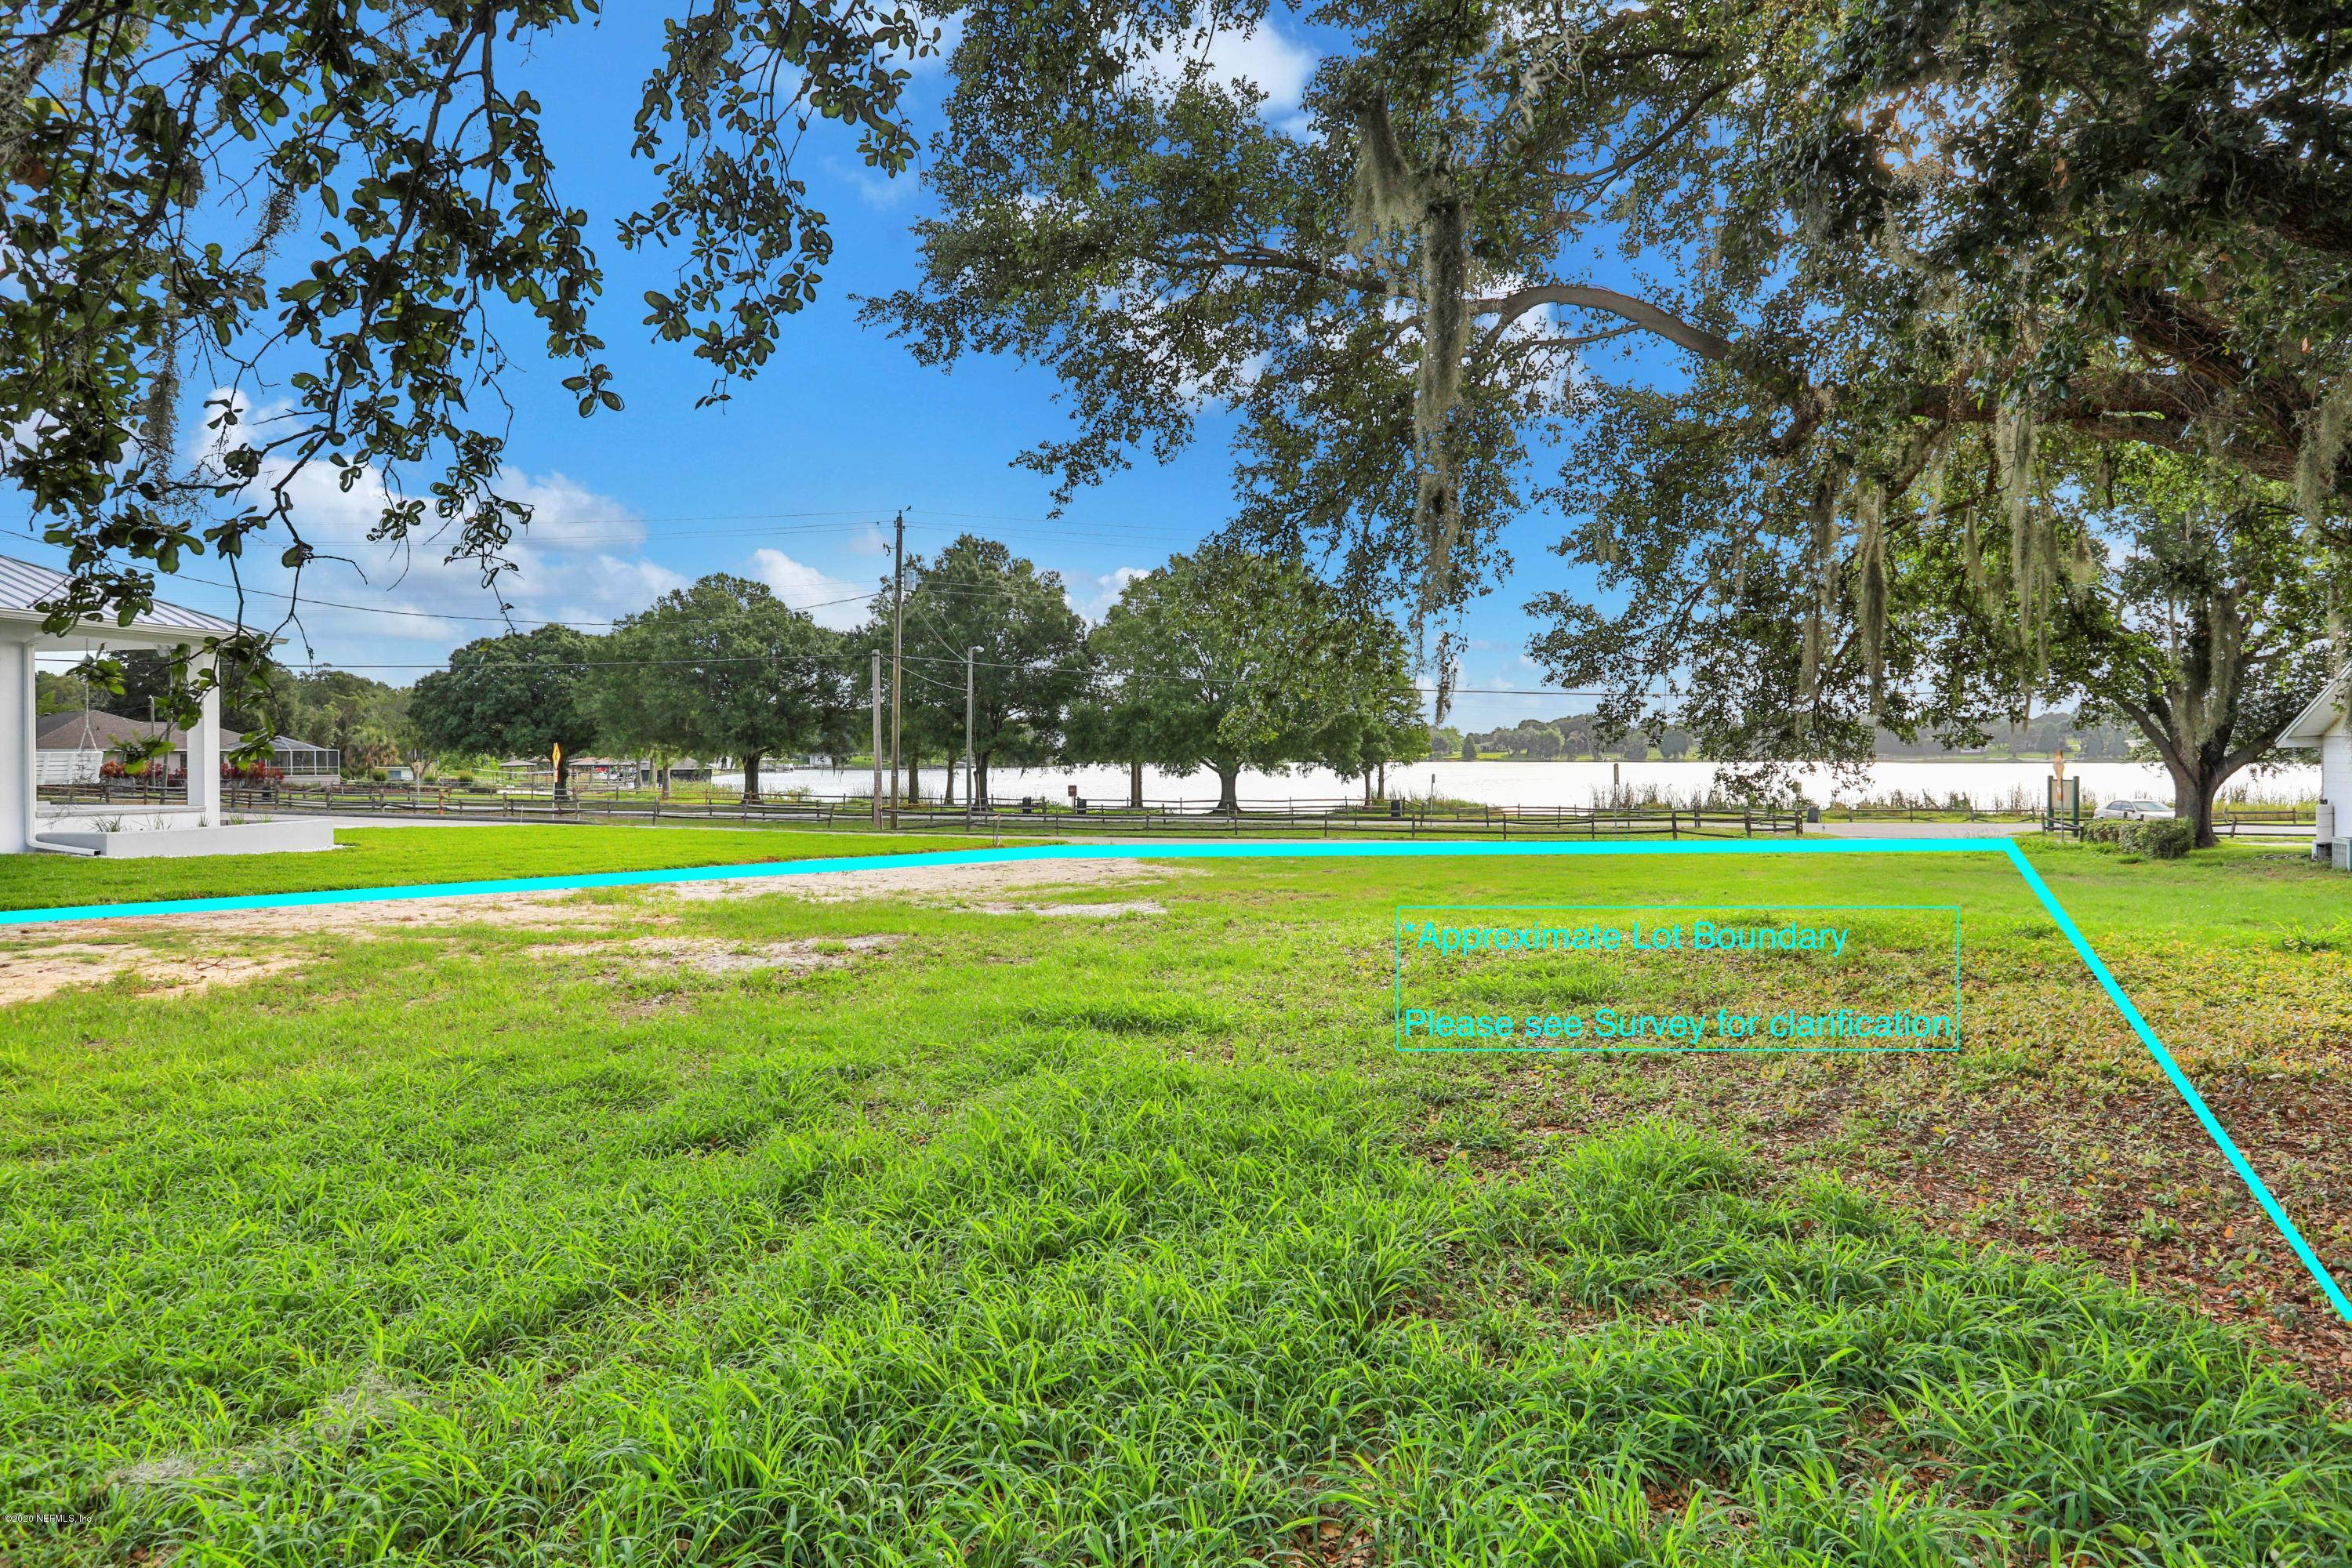 0 LAKE SUMMIT, WINTER HAVEN, FLORIDA 33884, 3 Bedrooms Bedrooms, ,2 BathroomsBathrooms,Residential,For sale,LAKE SUMMIT,1083011